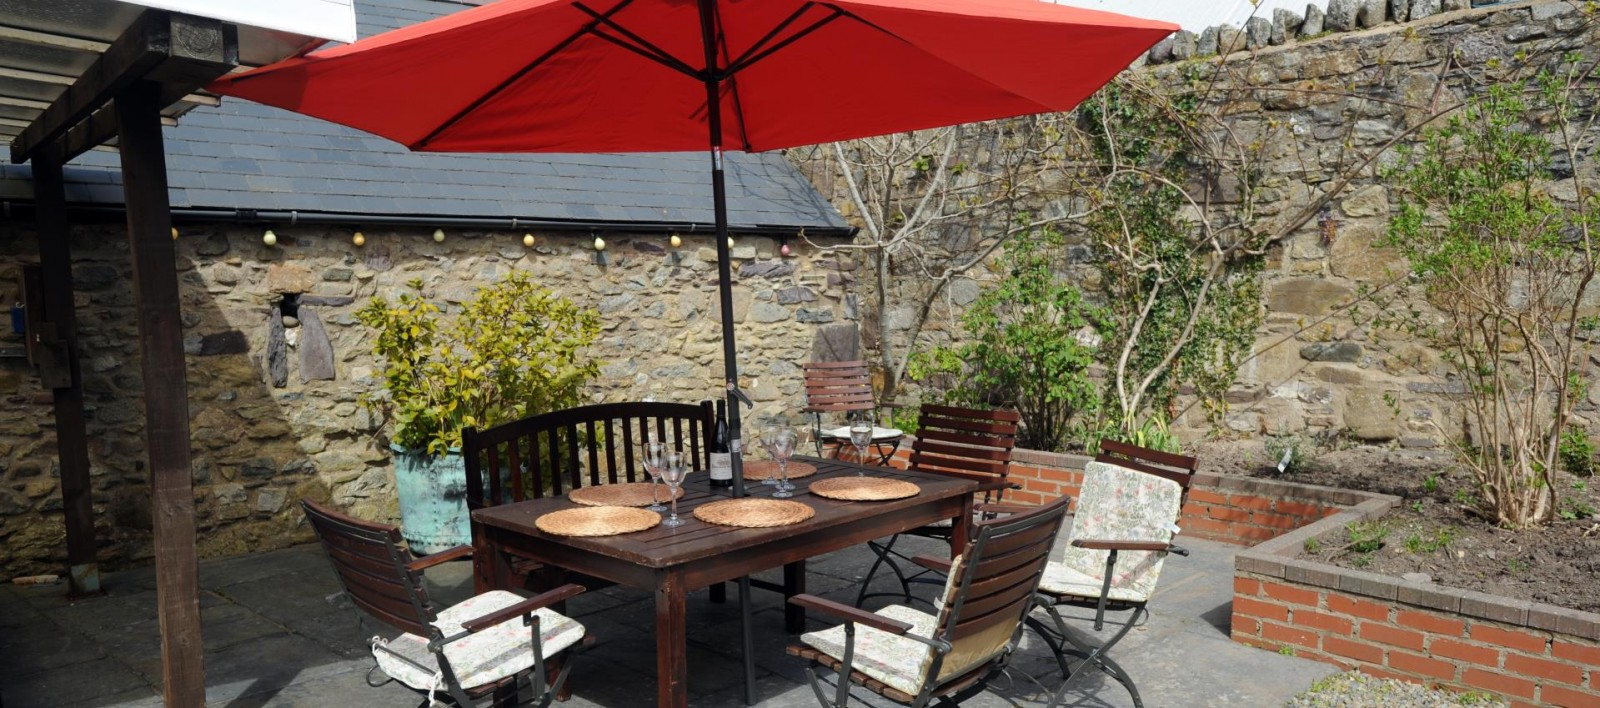 Holiday house with garden pembrokeshire